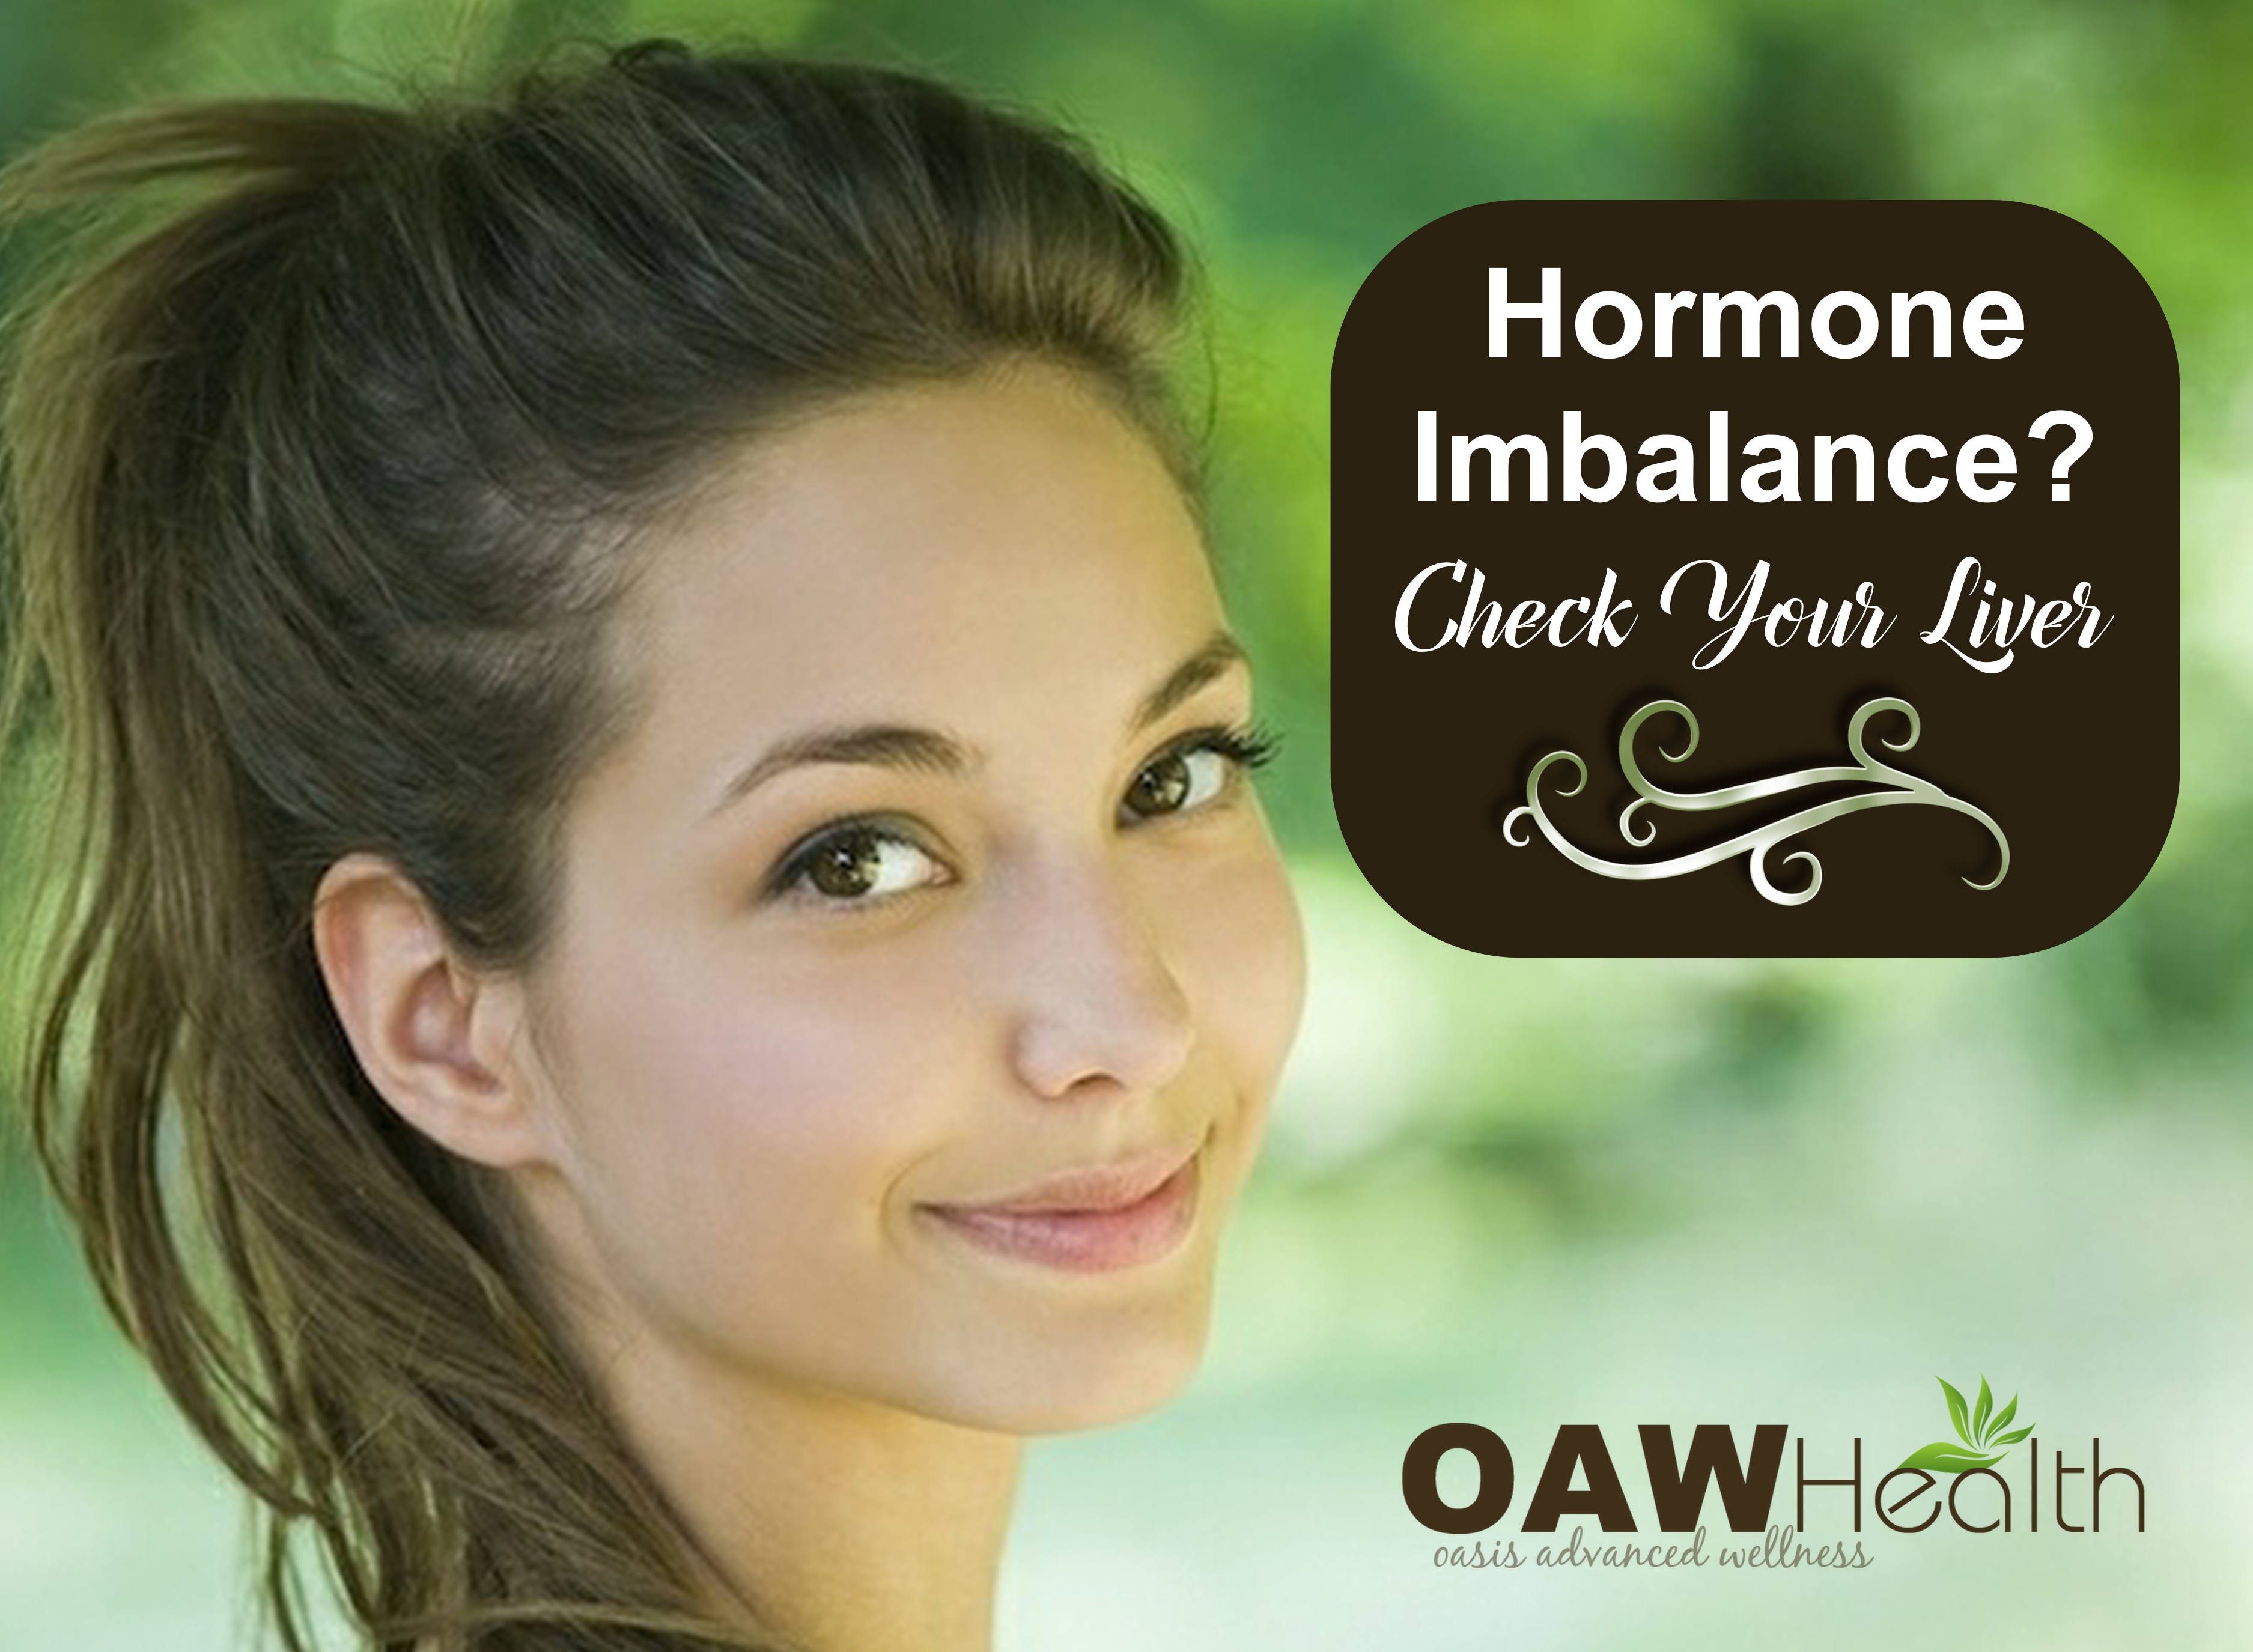 Hormone Imbalance – Check Your Liver